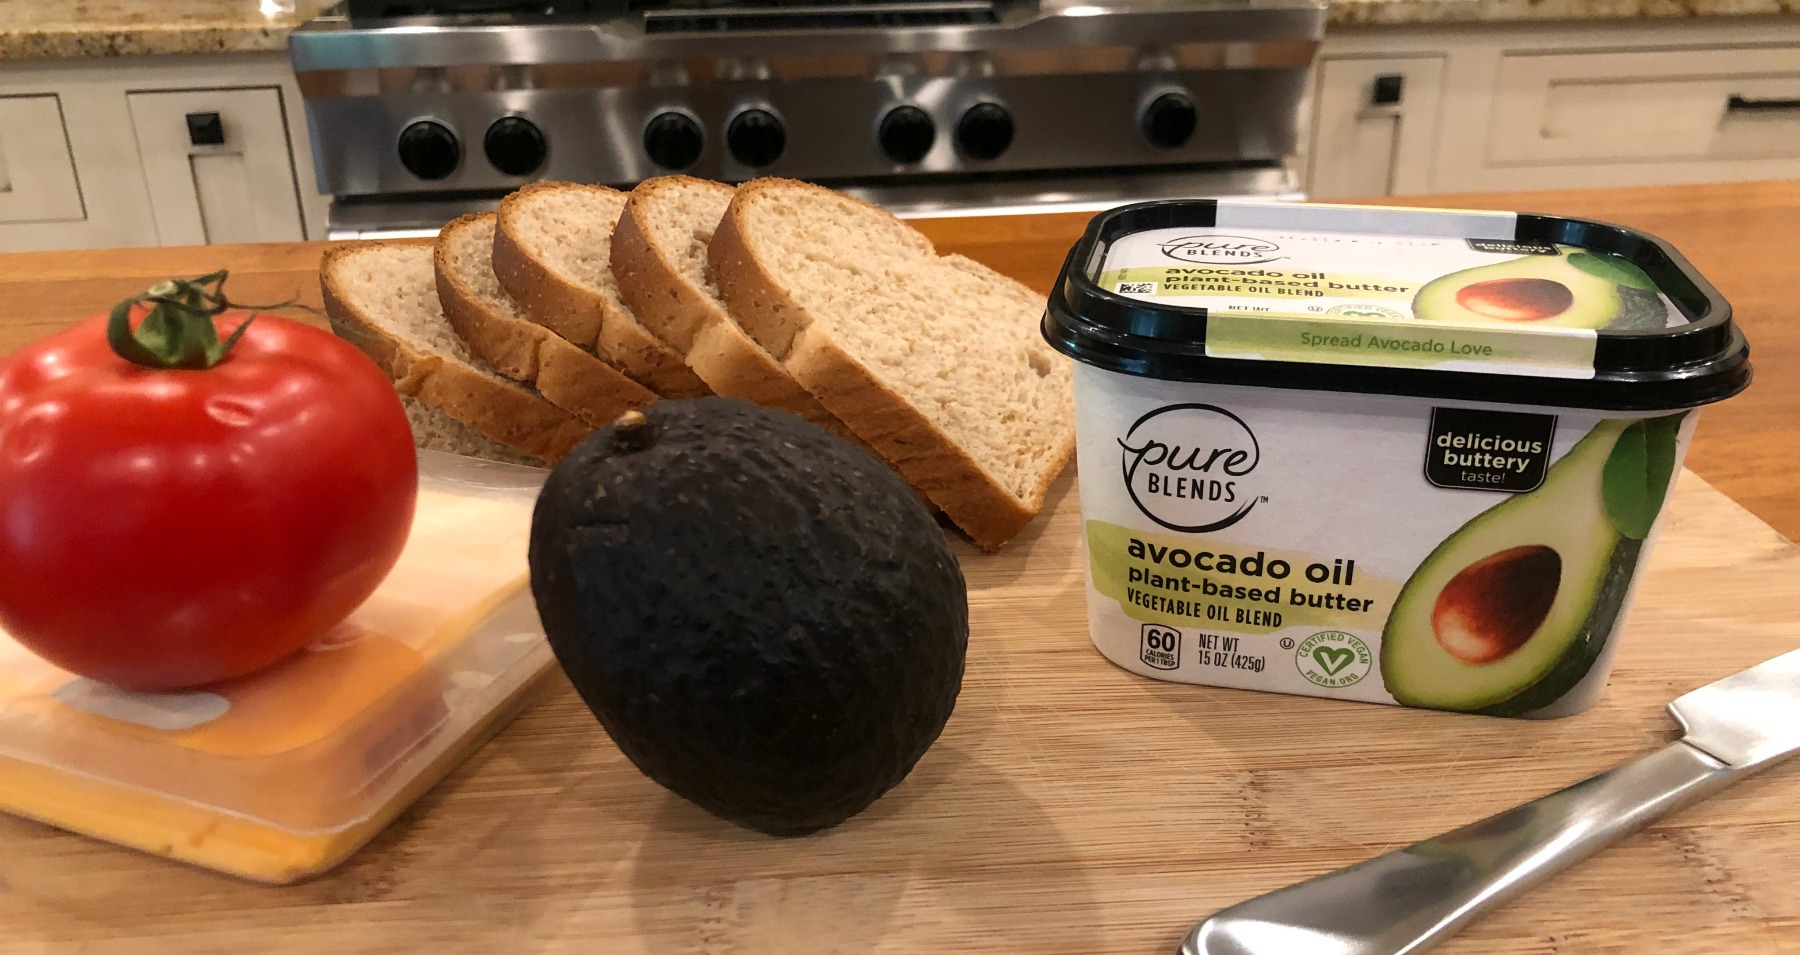 BIG Savings On Pure Blends Avocado Oil Plant-Based Butter - Save $1.50 At Publix on I Heart Publix